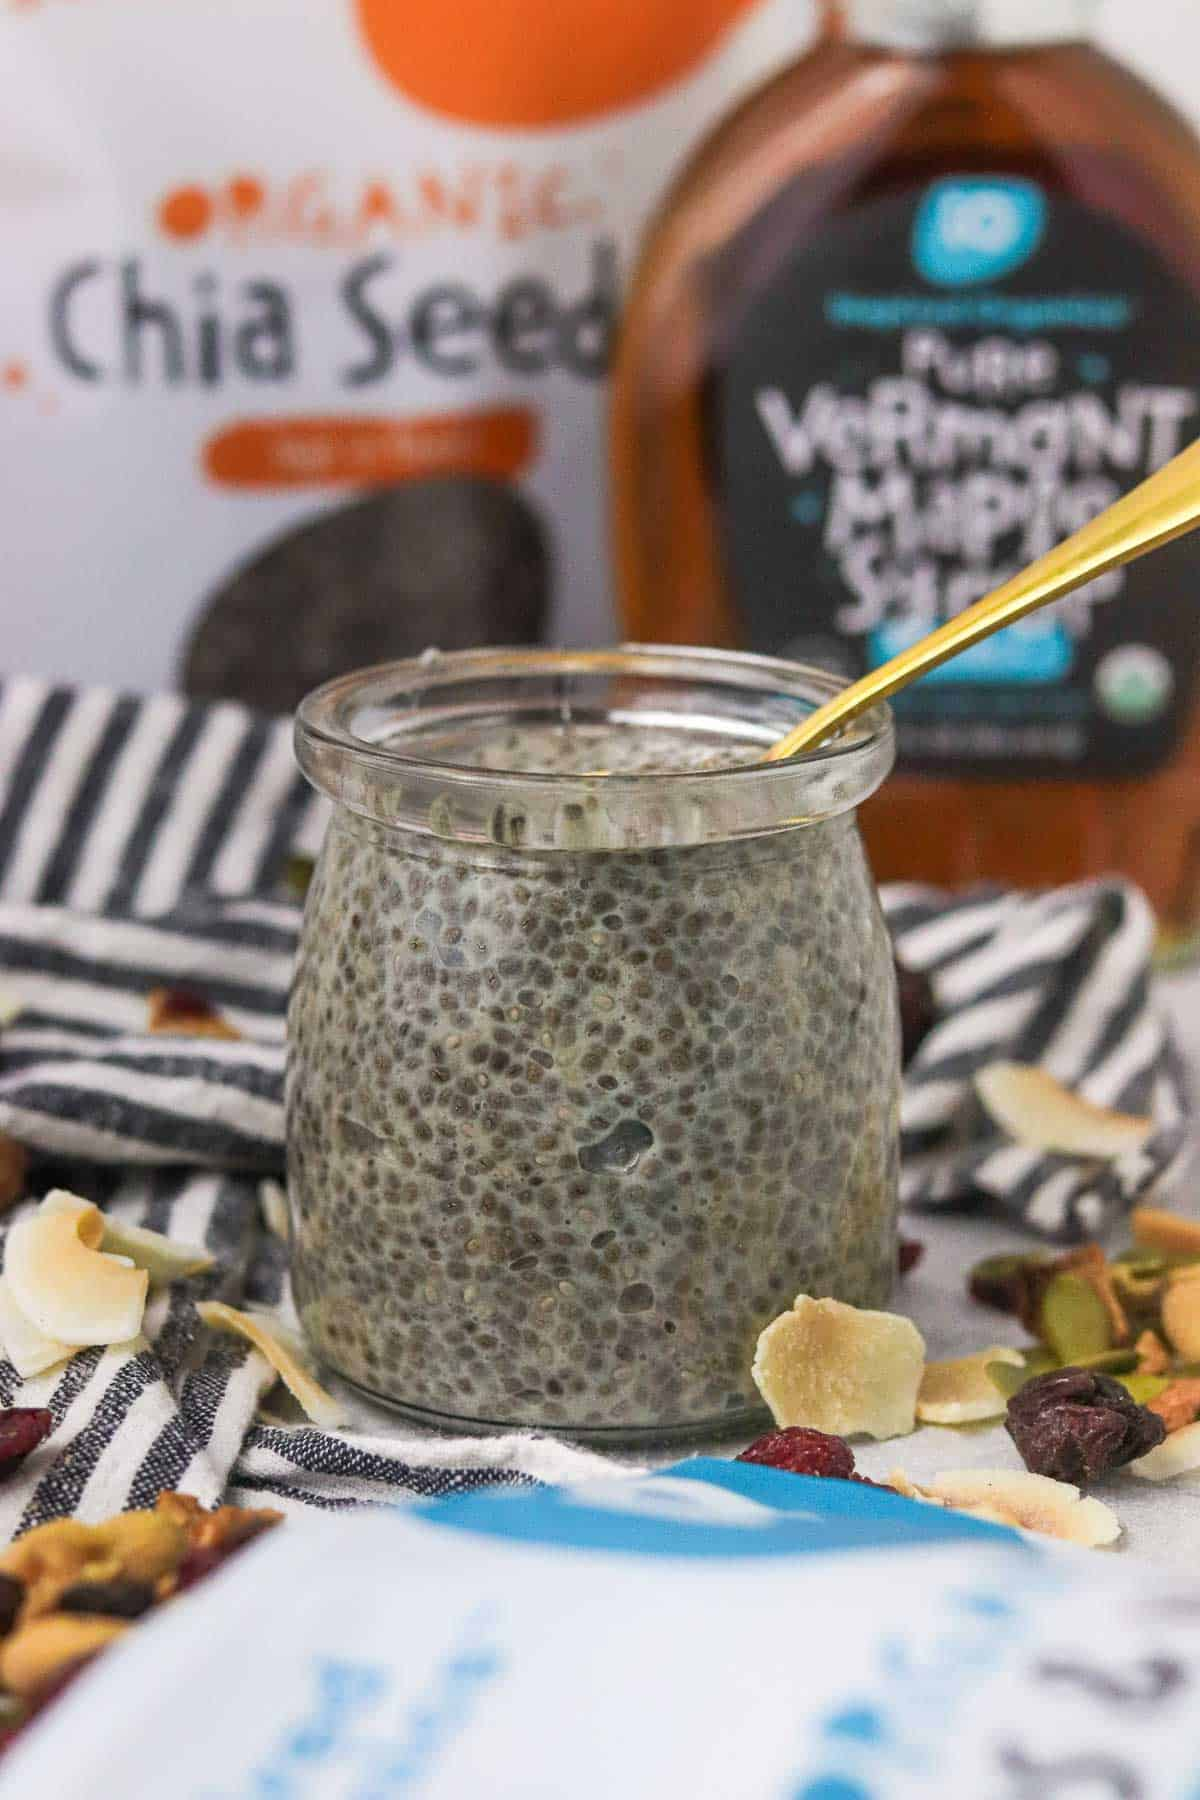 protein chia pudding with no toppings.